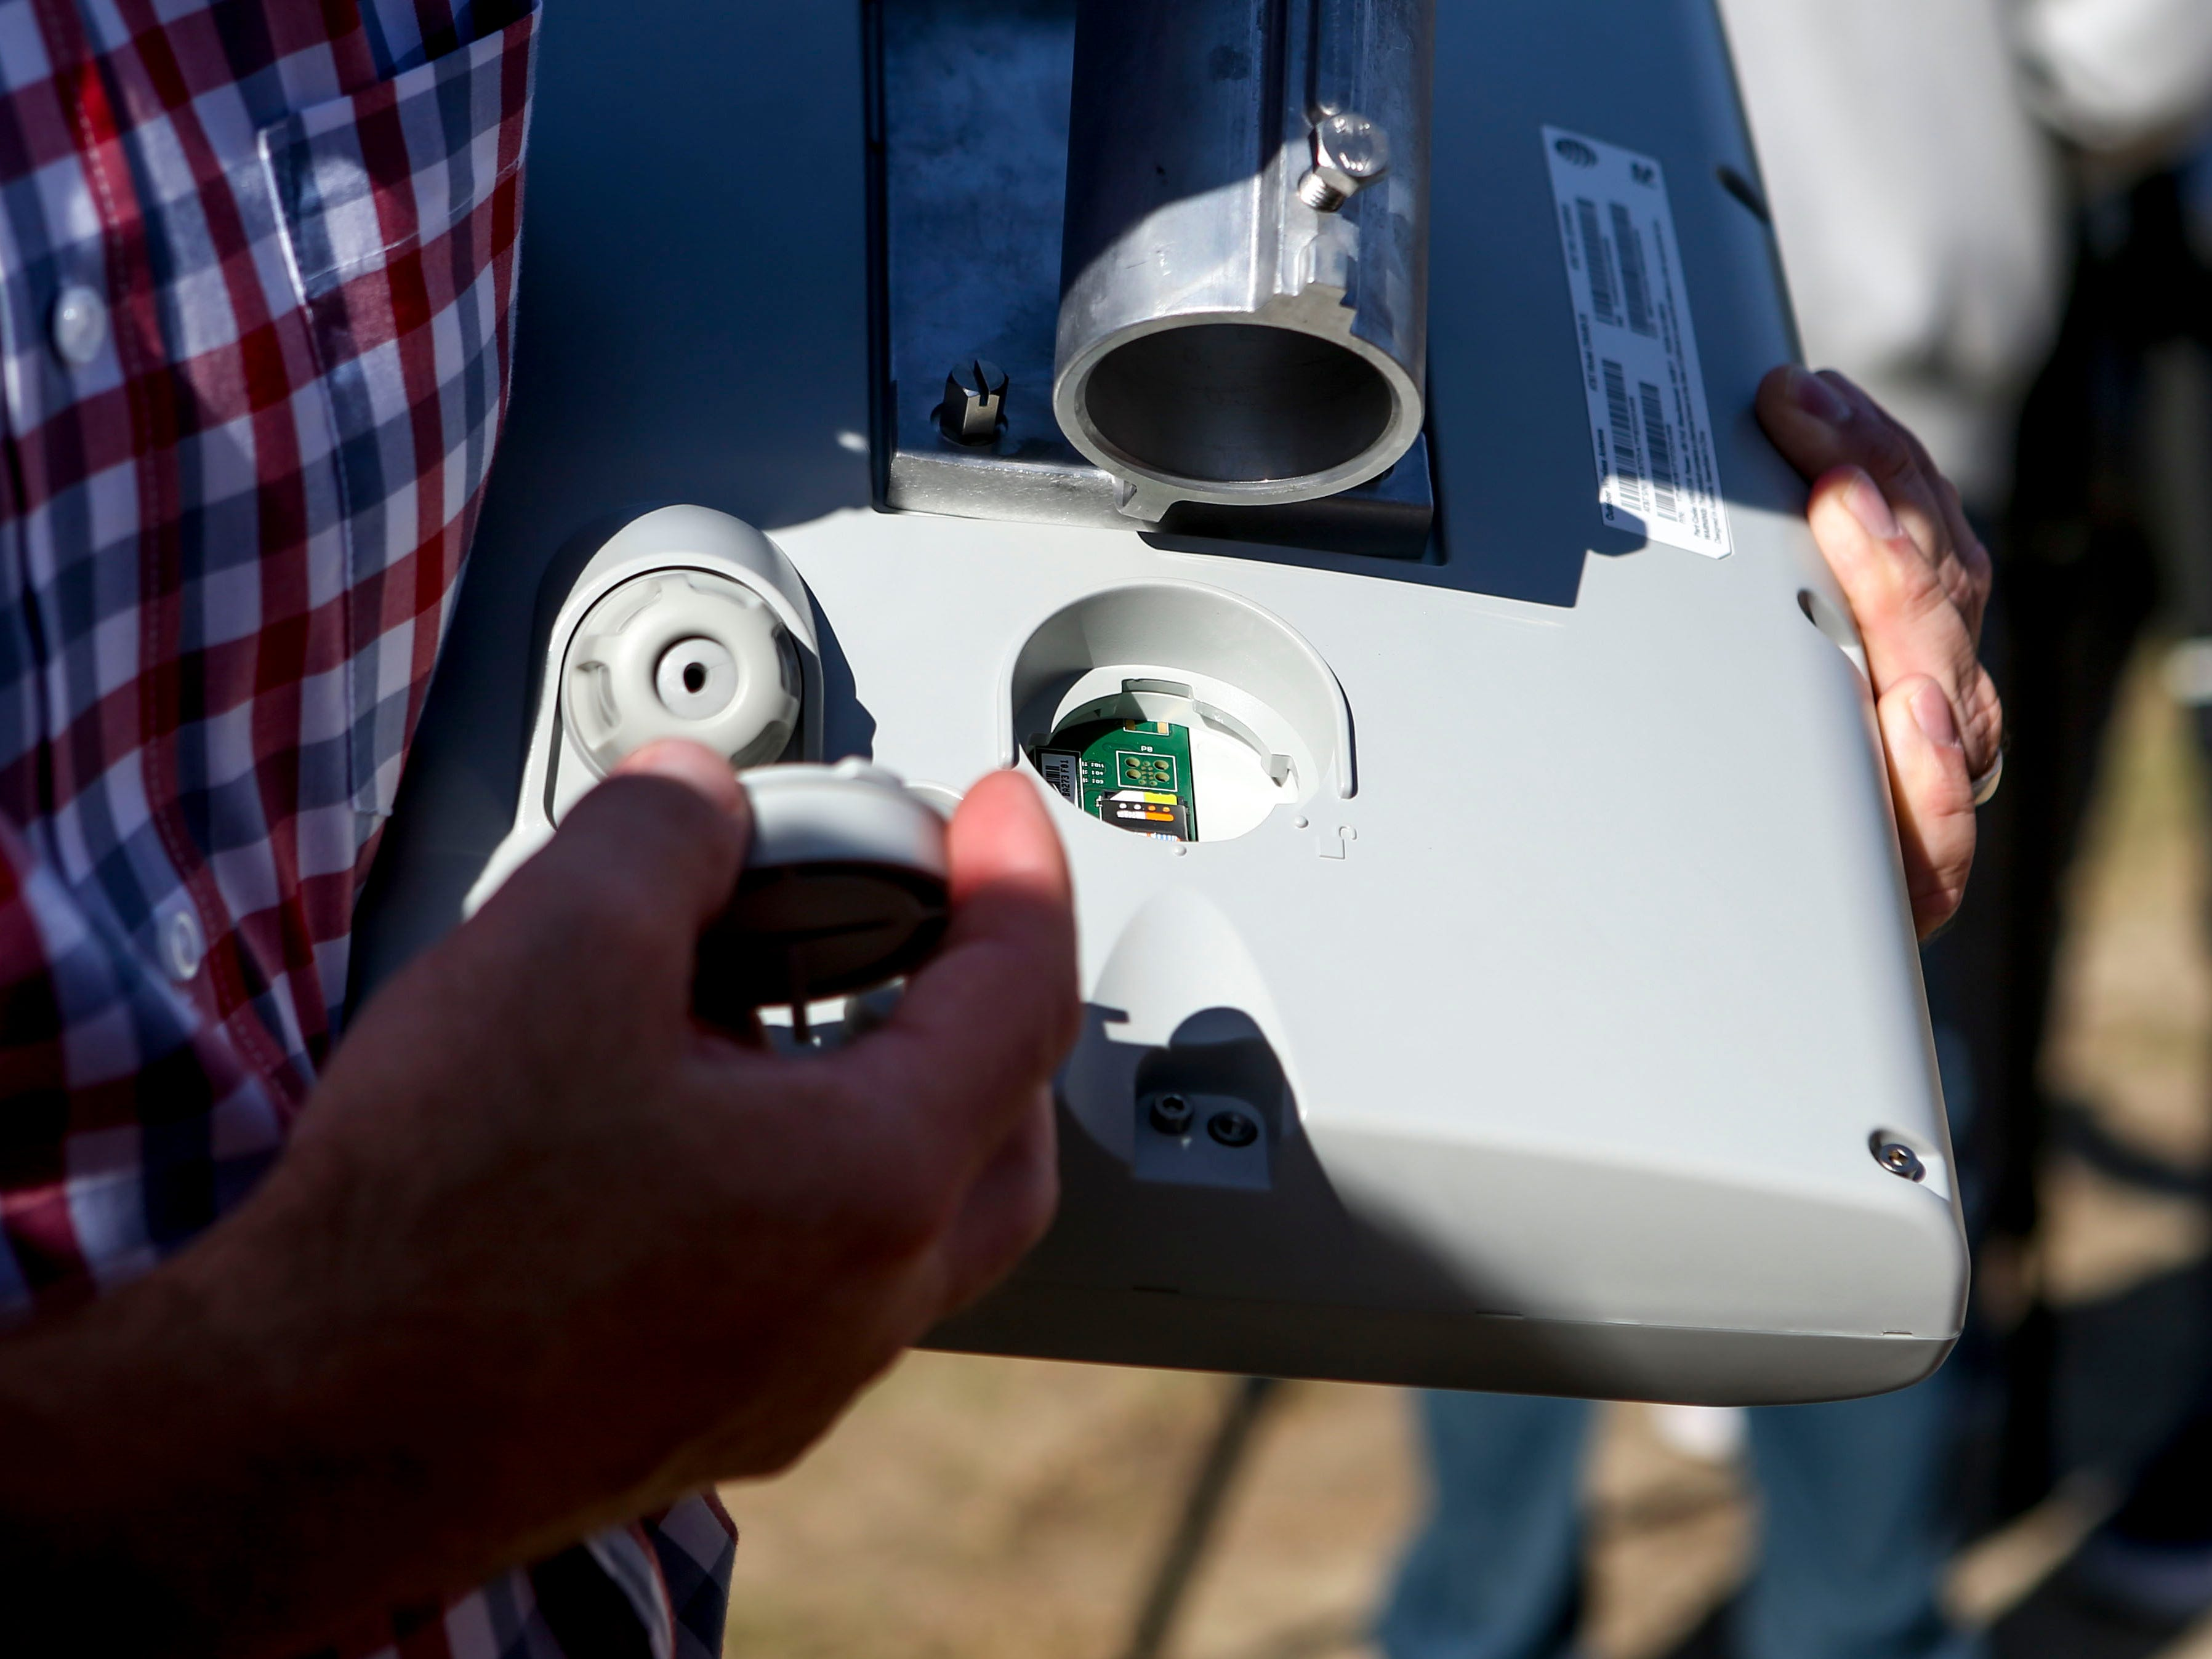 Ryan Porter, chief operating officer of Jackson Chamber, examines the SIM card slot of a receiver that will be used to spread wireless broadband internet during a ceremonial opening for the expansion of wireless broadband coverage through AT&T cell towers at 4567 Brownsville Hwy in Denmark, Tenn., on Tuesday, Oct. 30, 2018.